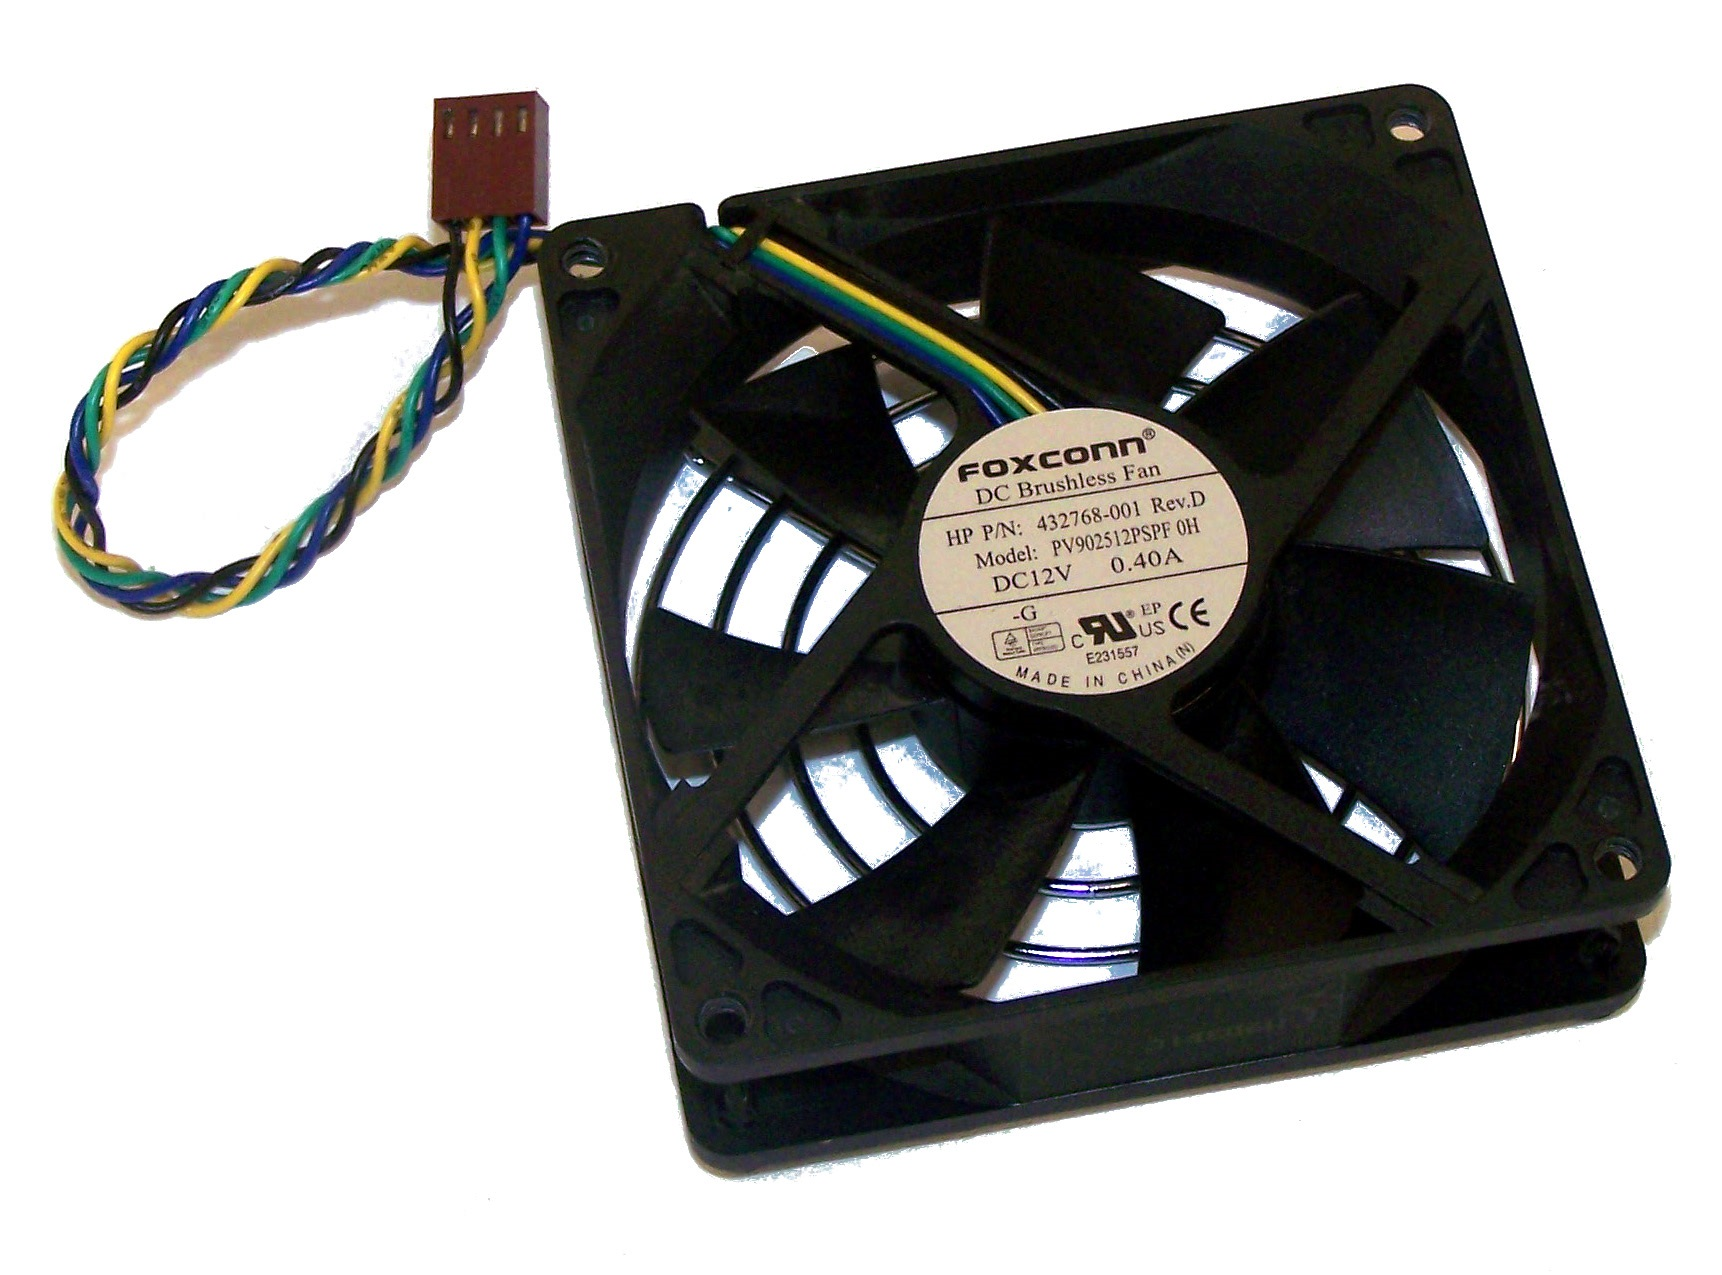 432768-001 HP Workstation xw4400/9400 DC 12V 0.40A Fan